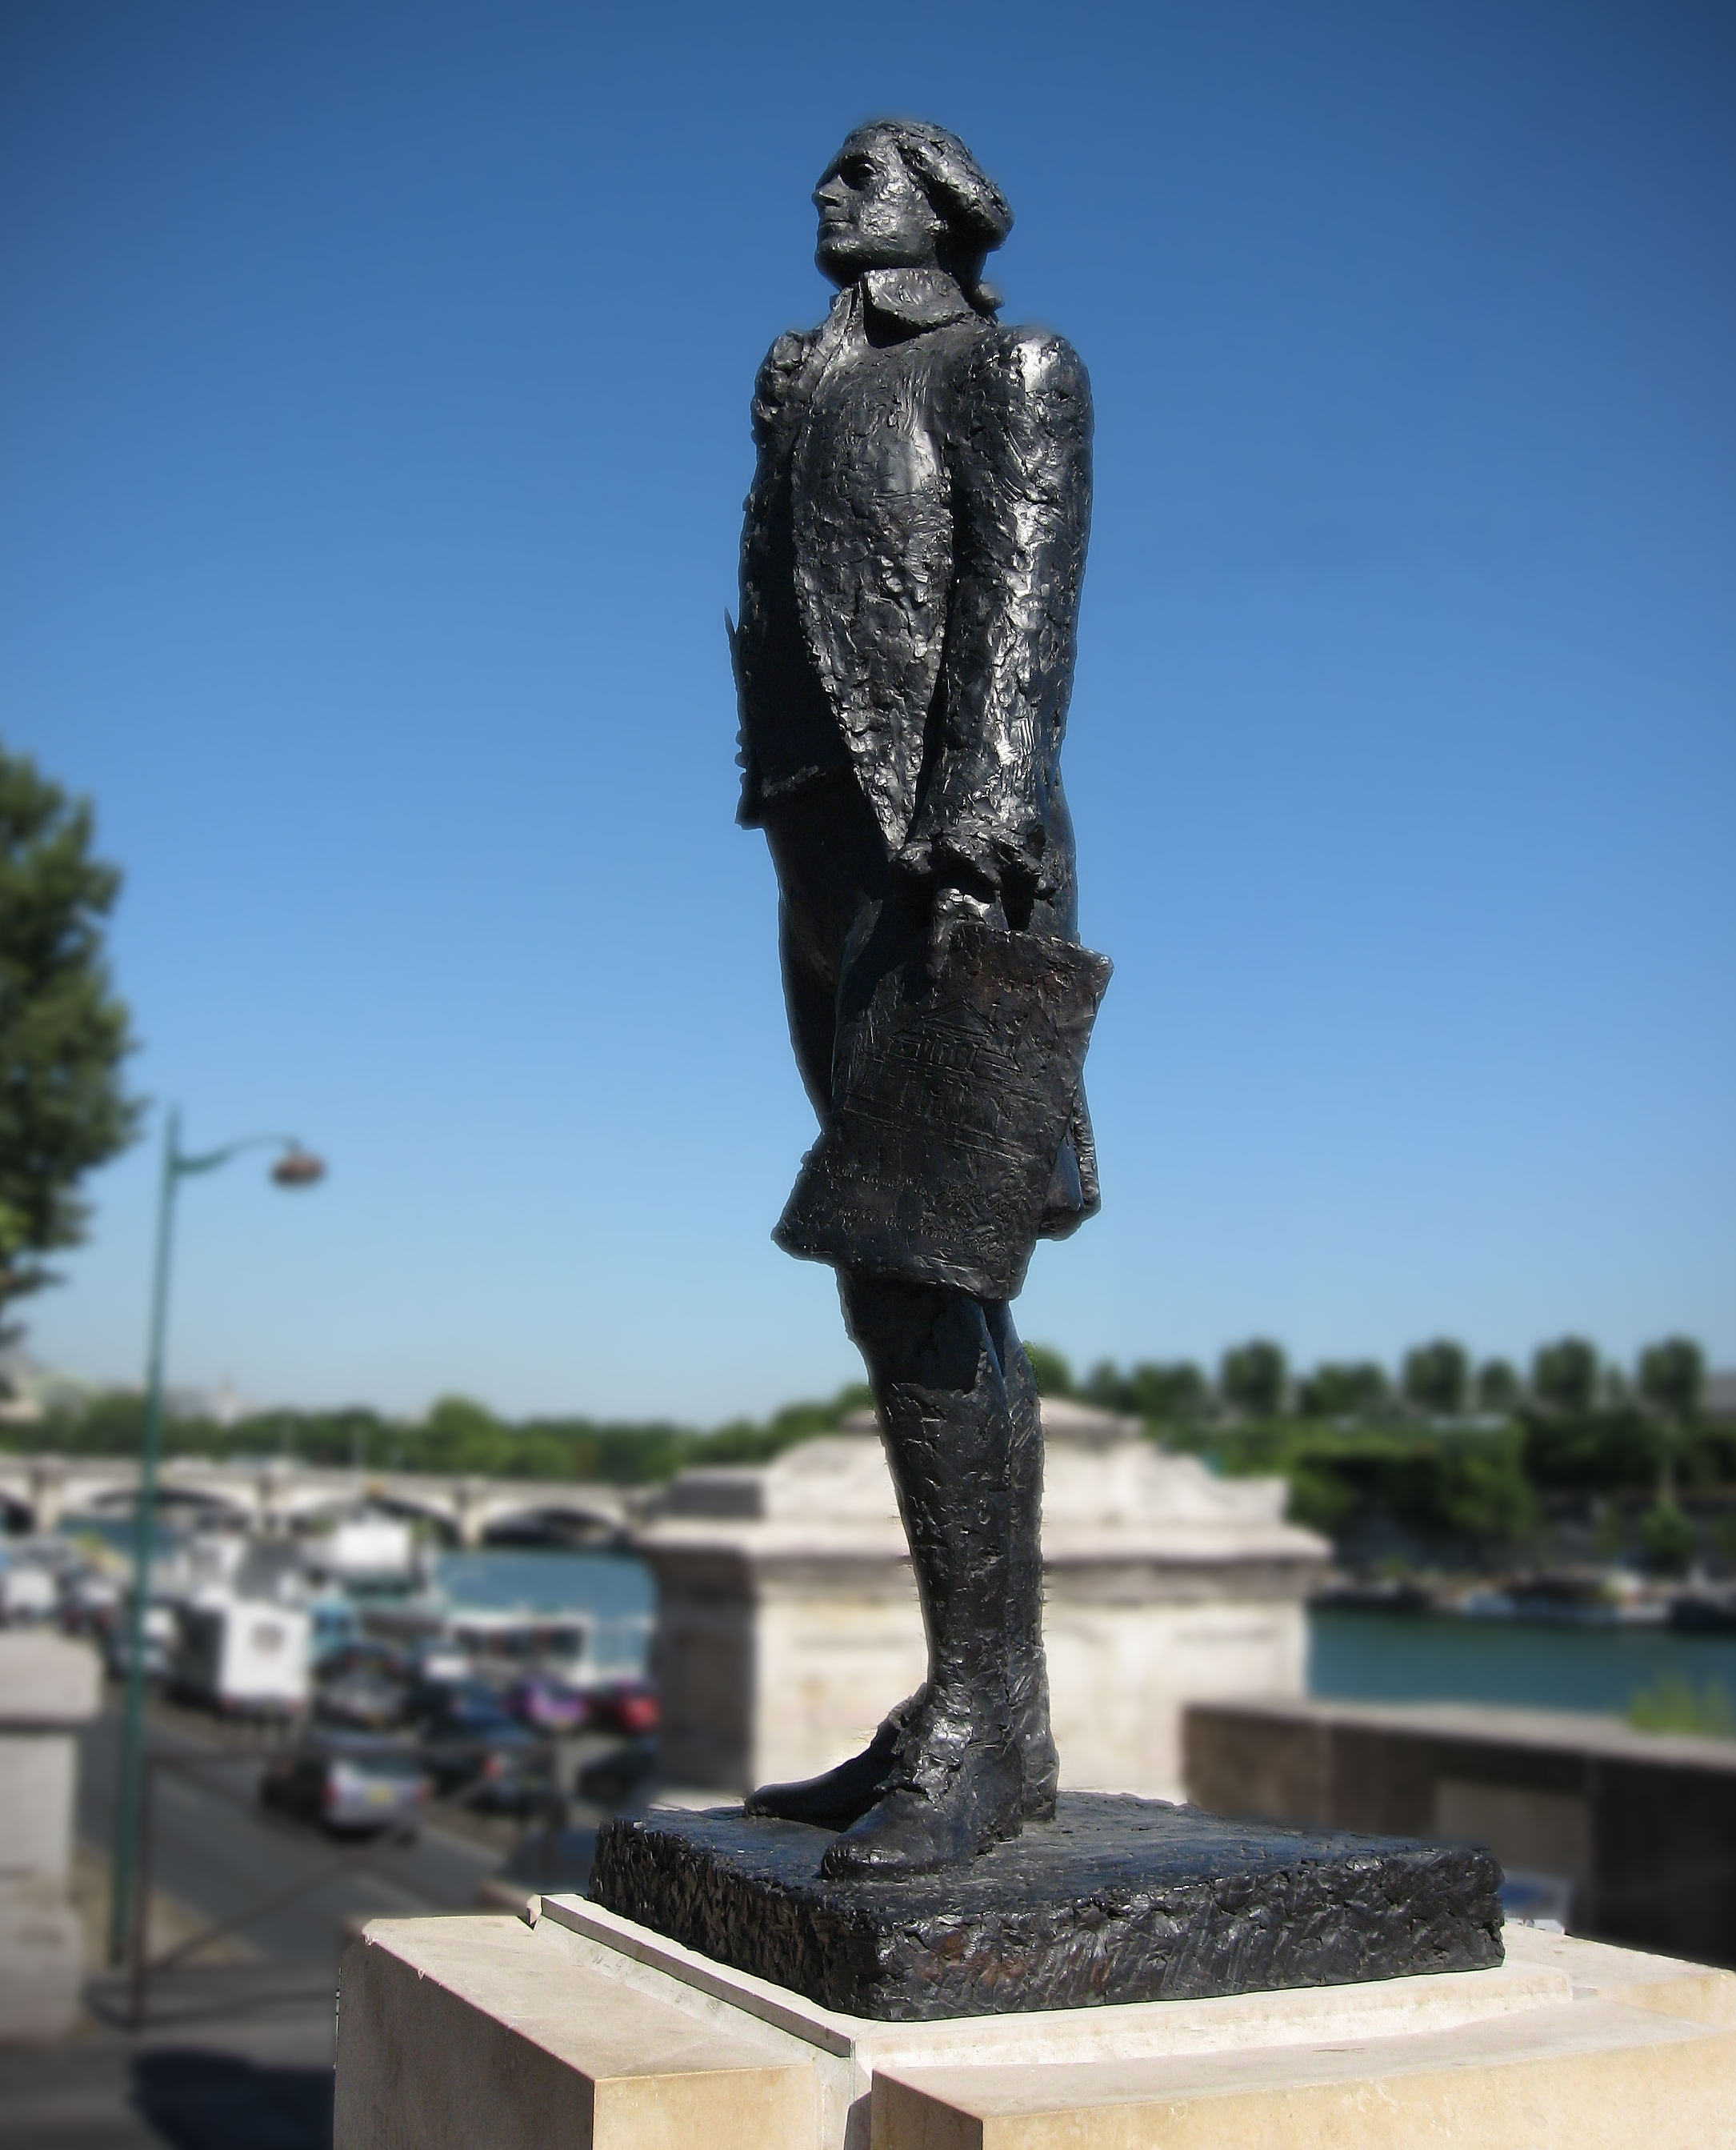 Statue honoring Jefferson on the banks of the Seine in Paris, France.